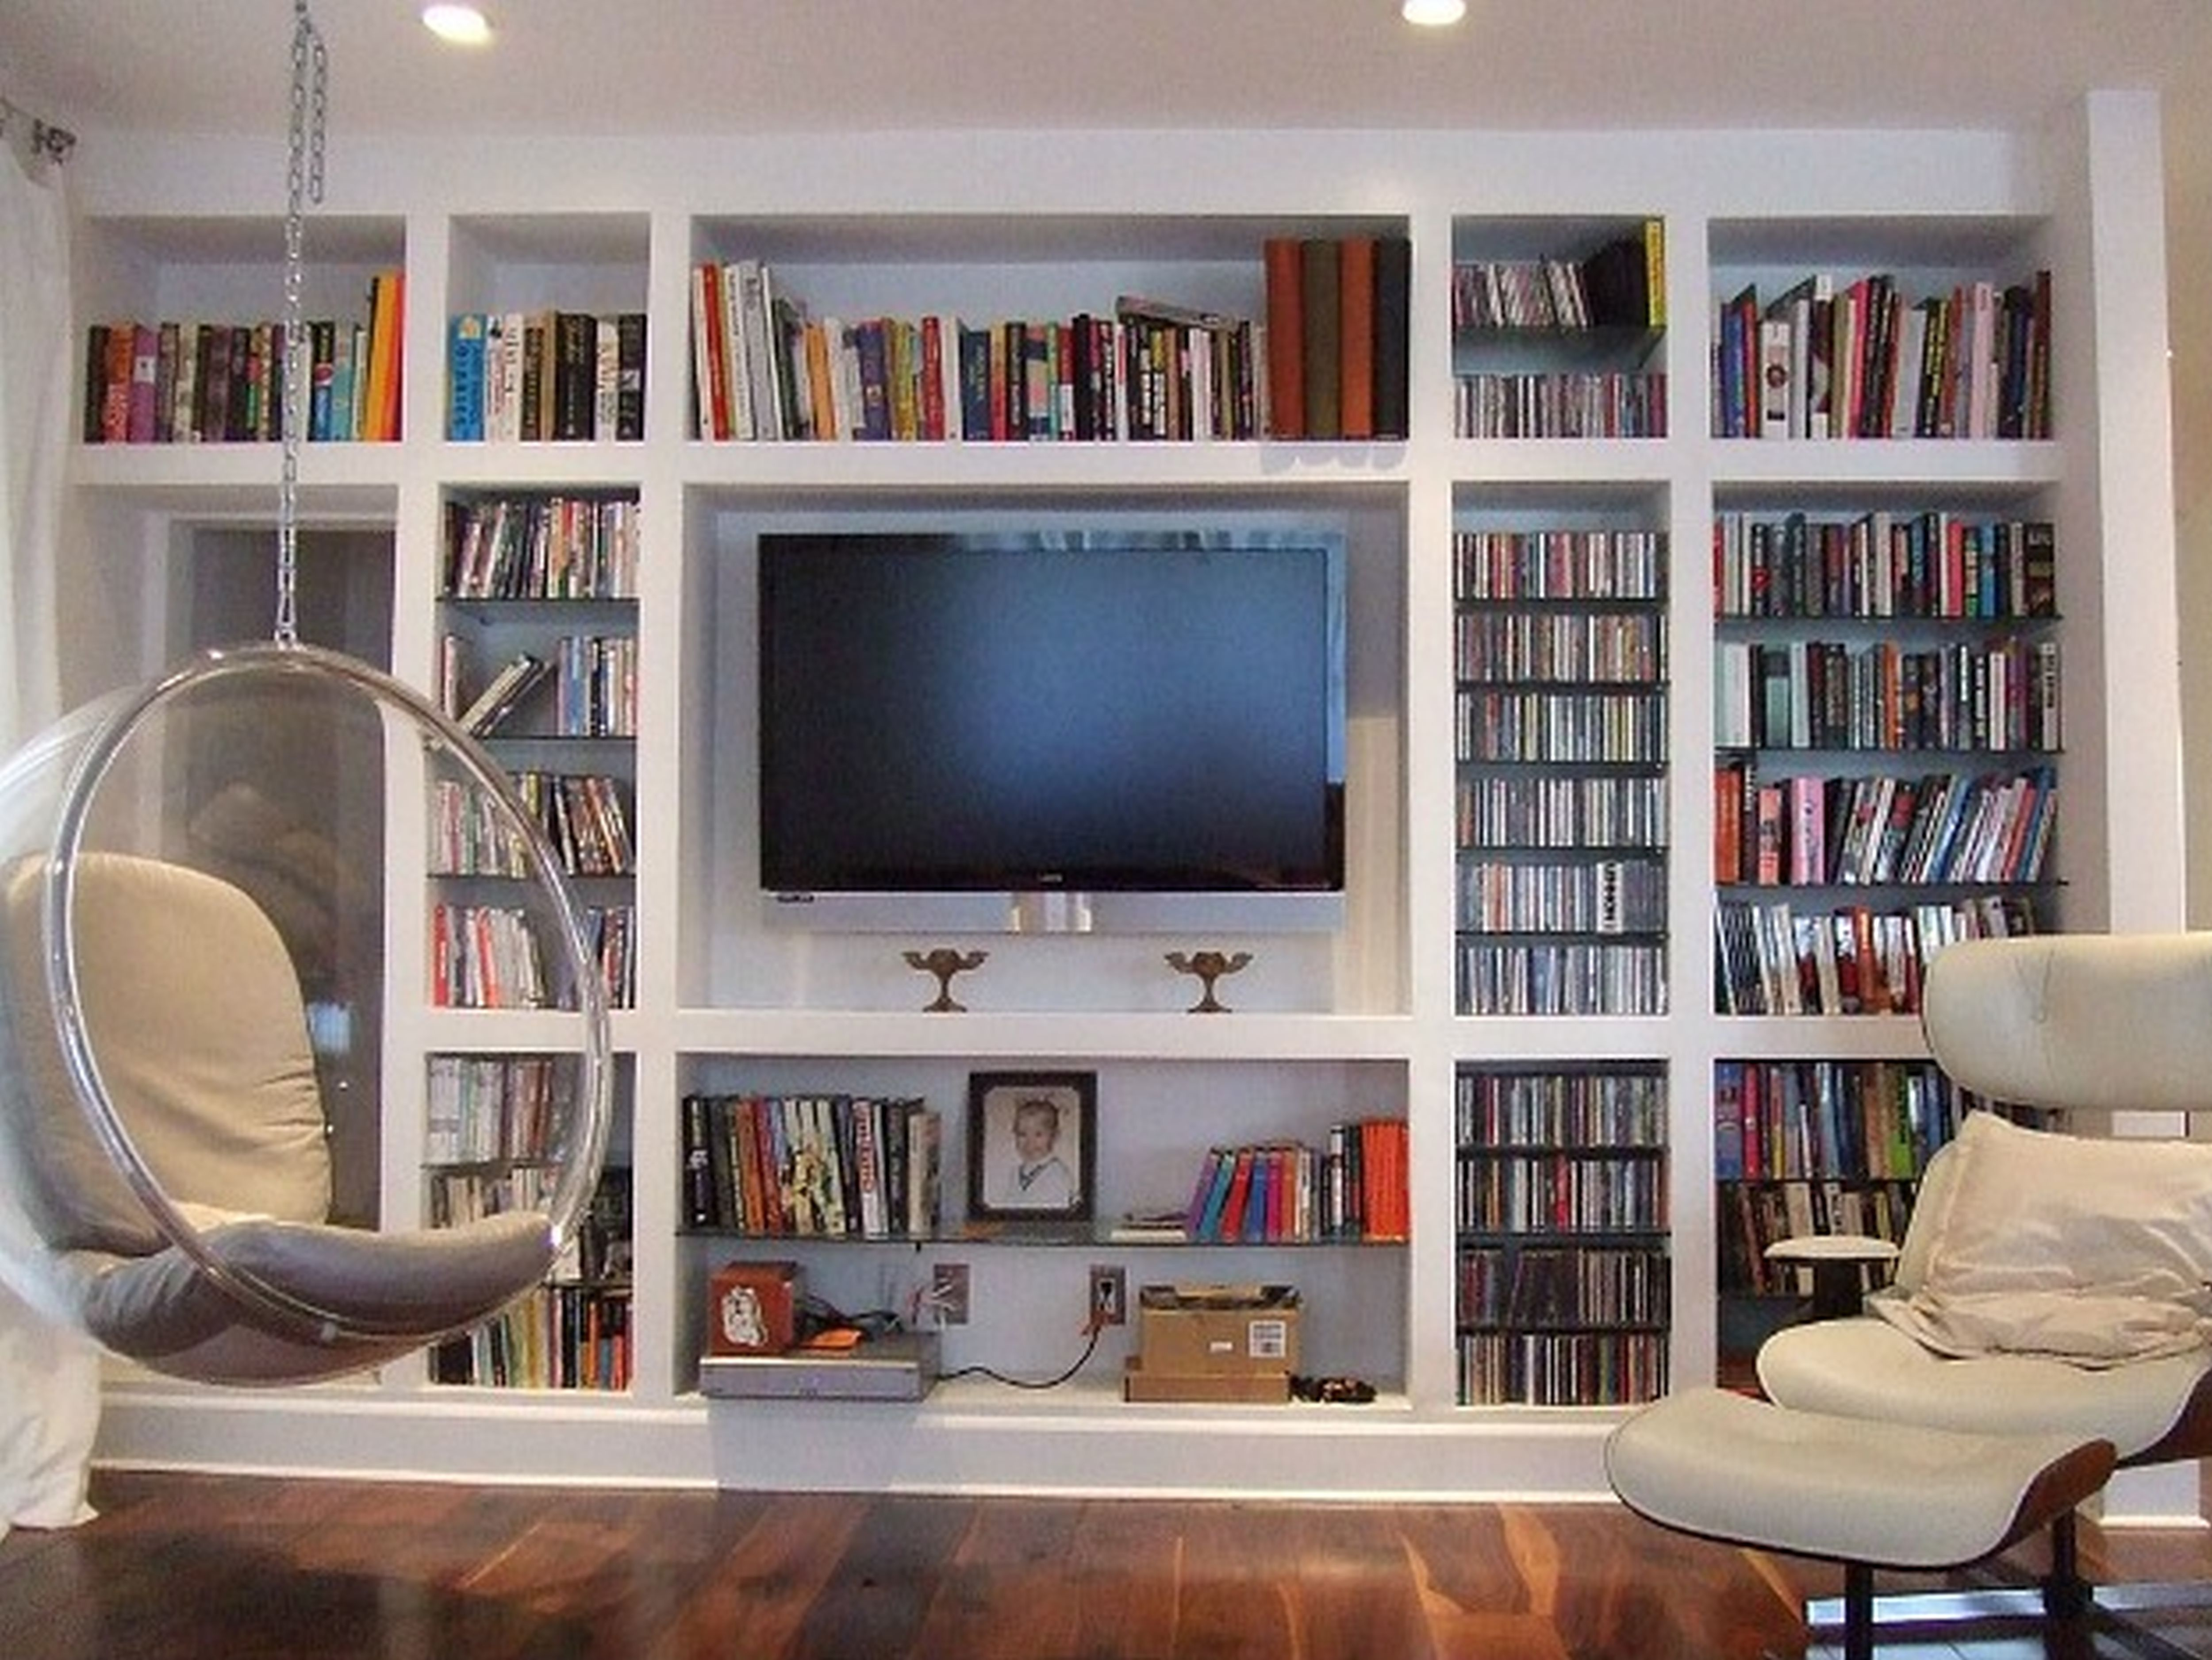 Tv Stands 2017 Stunning Design Bookshelf And Tv Stand Gallery Tv Intended For Bookcase With Tv Stand (View 14 of 15)